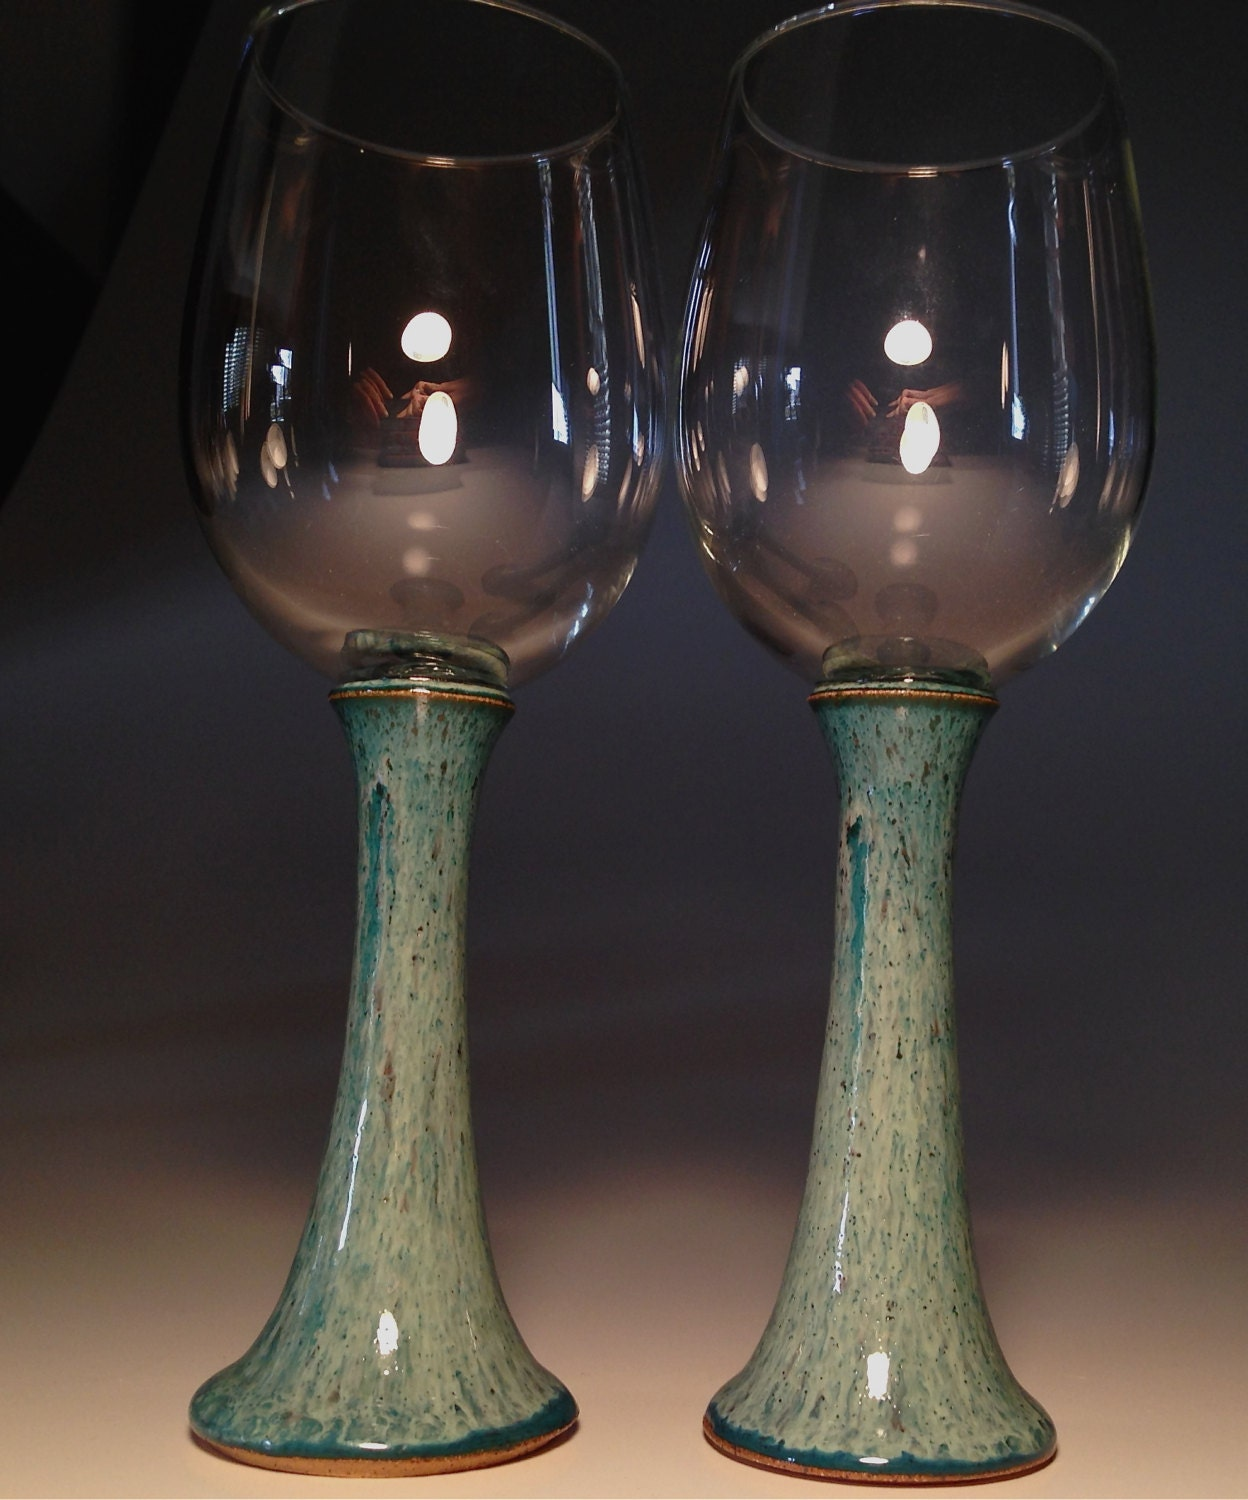 handcrafted pottery wine glasses handmade glass set goblets. Black Bedroom Furniture Sets. Home Design Ideas